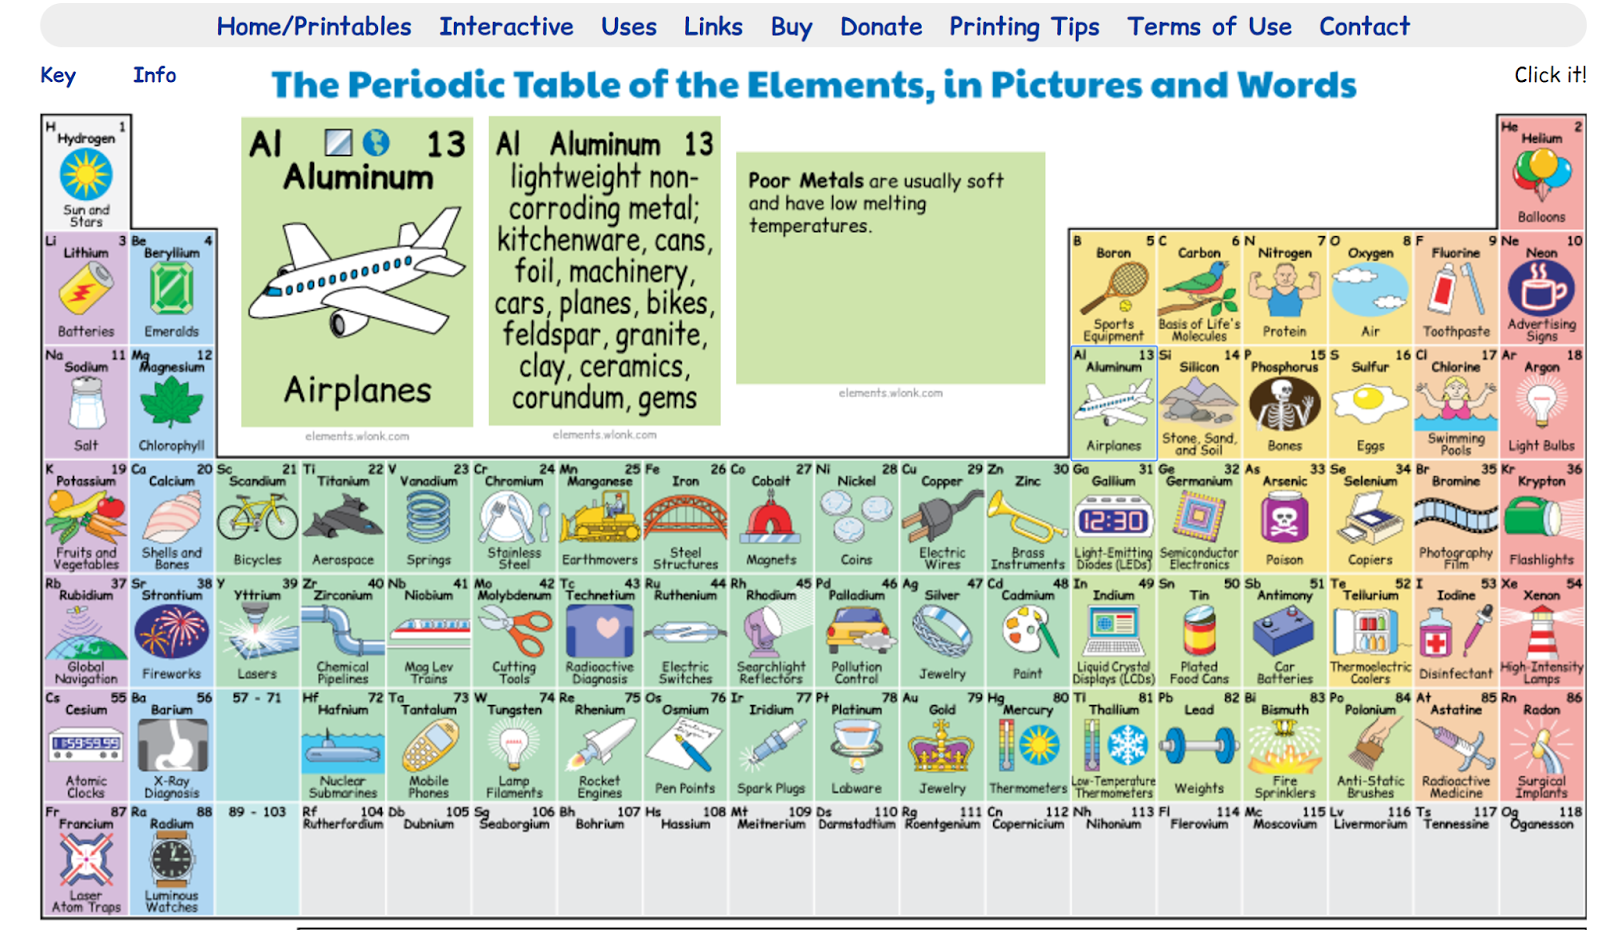 Free technology for teachers the periodic table in pictures and words the periodic table of elements in pictures and words could be a great resource for middle school science classrooms it also provides a nice model for an urtaz Choice Image